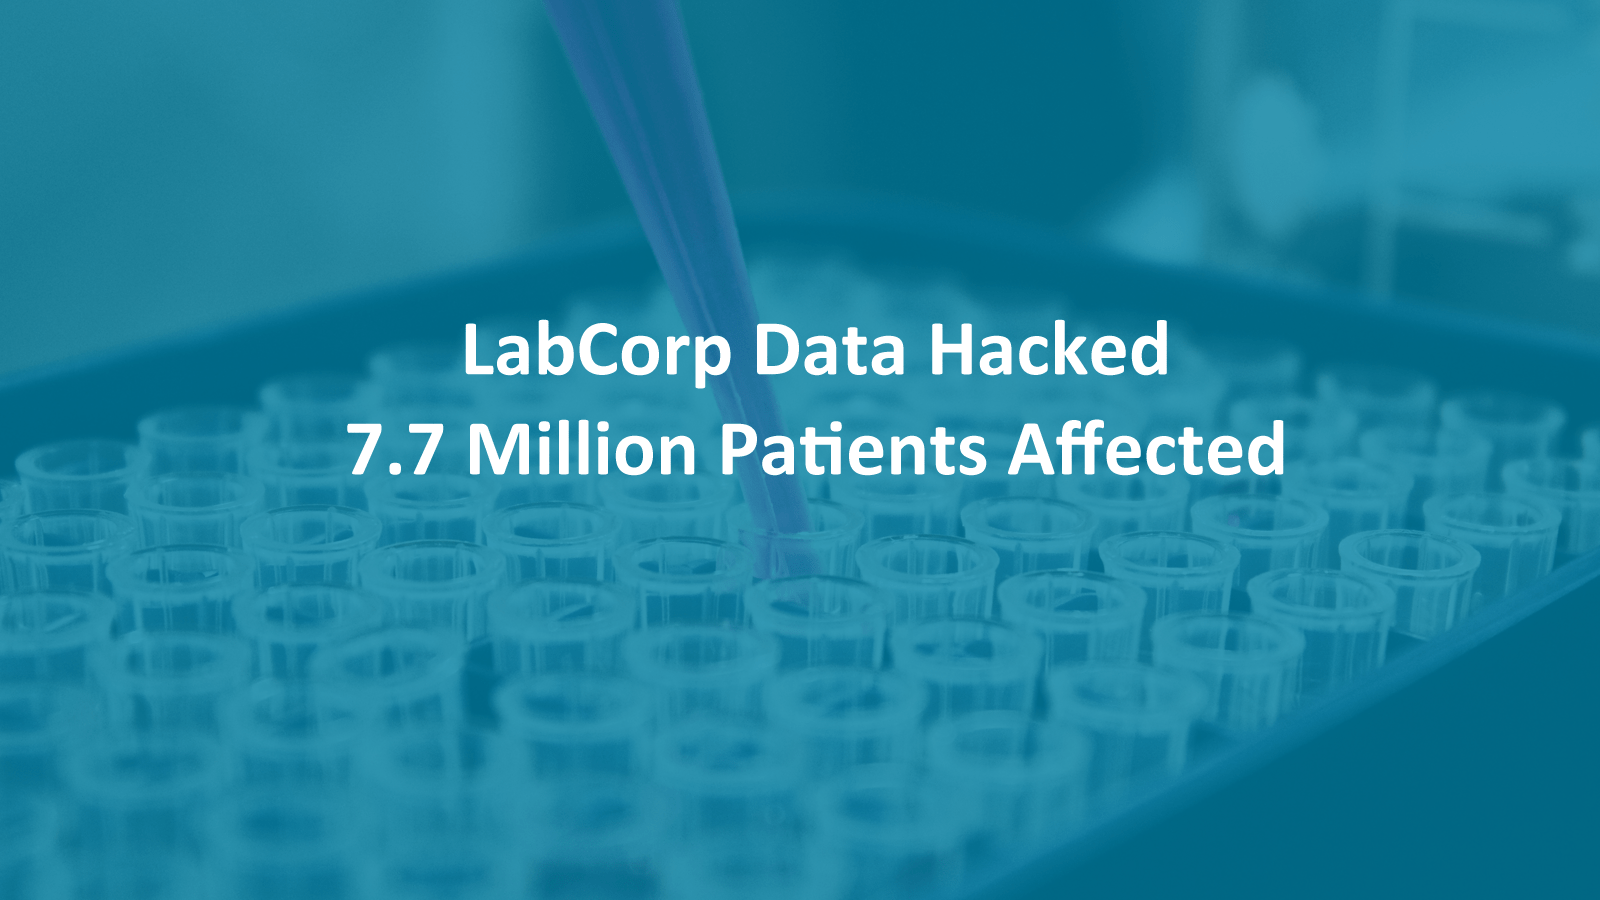 LabCorp Data Hacked